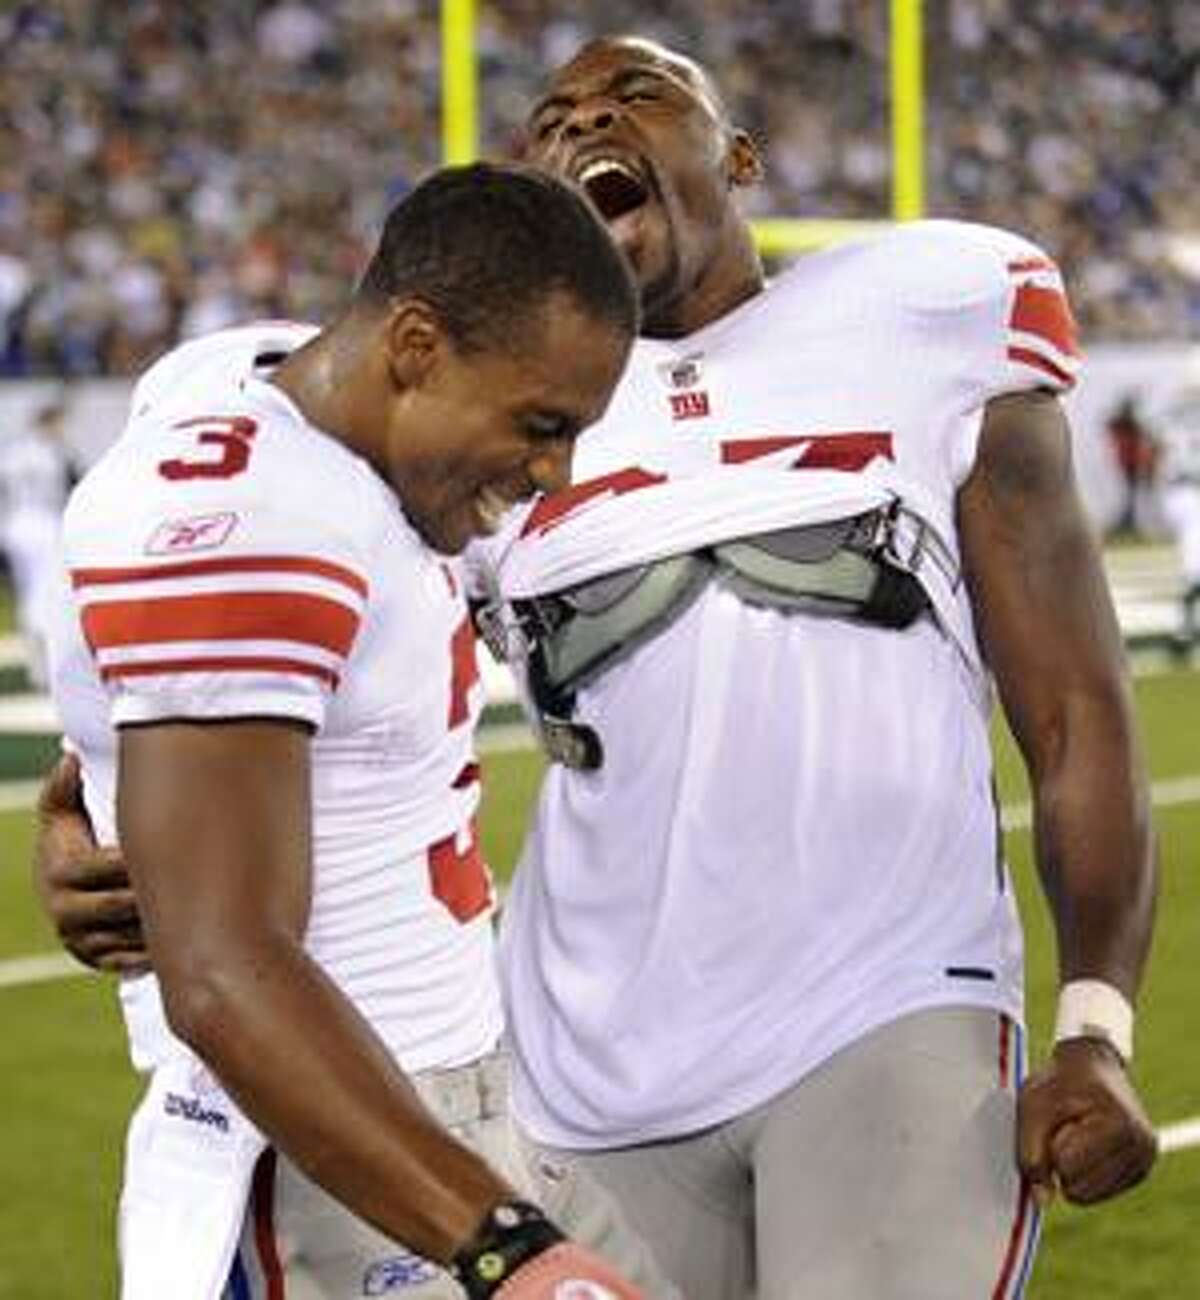 New York Giants' Victor Cruz, left, celebrates with Brandon Jacobs during the fourth quarter after scoring his second touchdown of a preseason NFL football game at New Meadowlands Stadium in East Rutherford, N.J., Monday, Aug. 16, 2010. The Giants defeated the New York Jets 31-16. (AP Photo/Bill Kostroun)